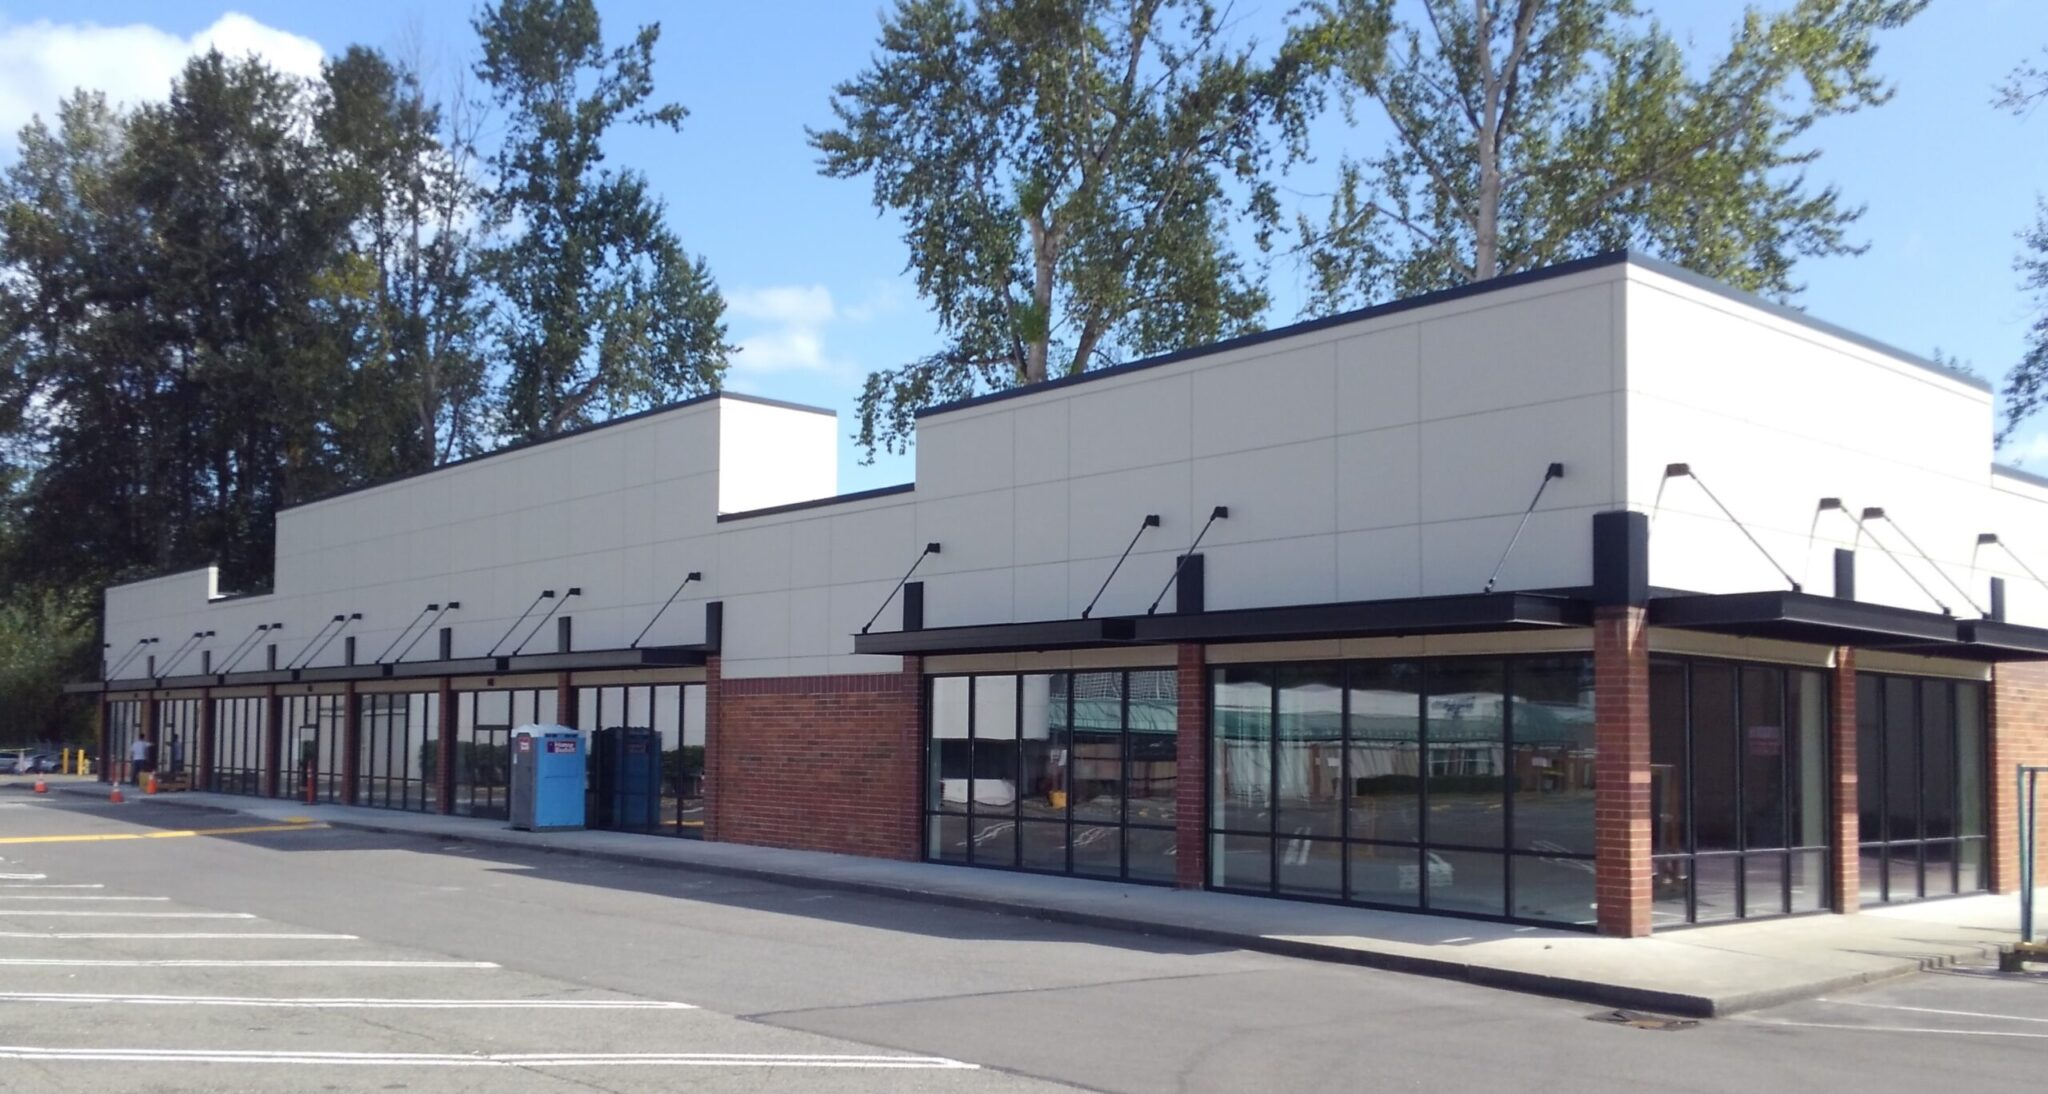 2101.6 - Storefronts - Valley Plaza Fire Rebuild